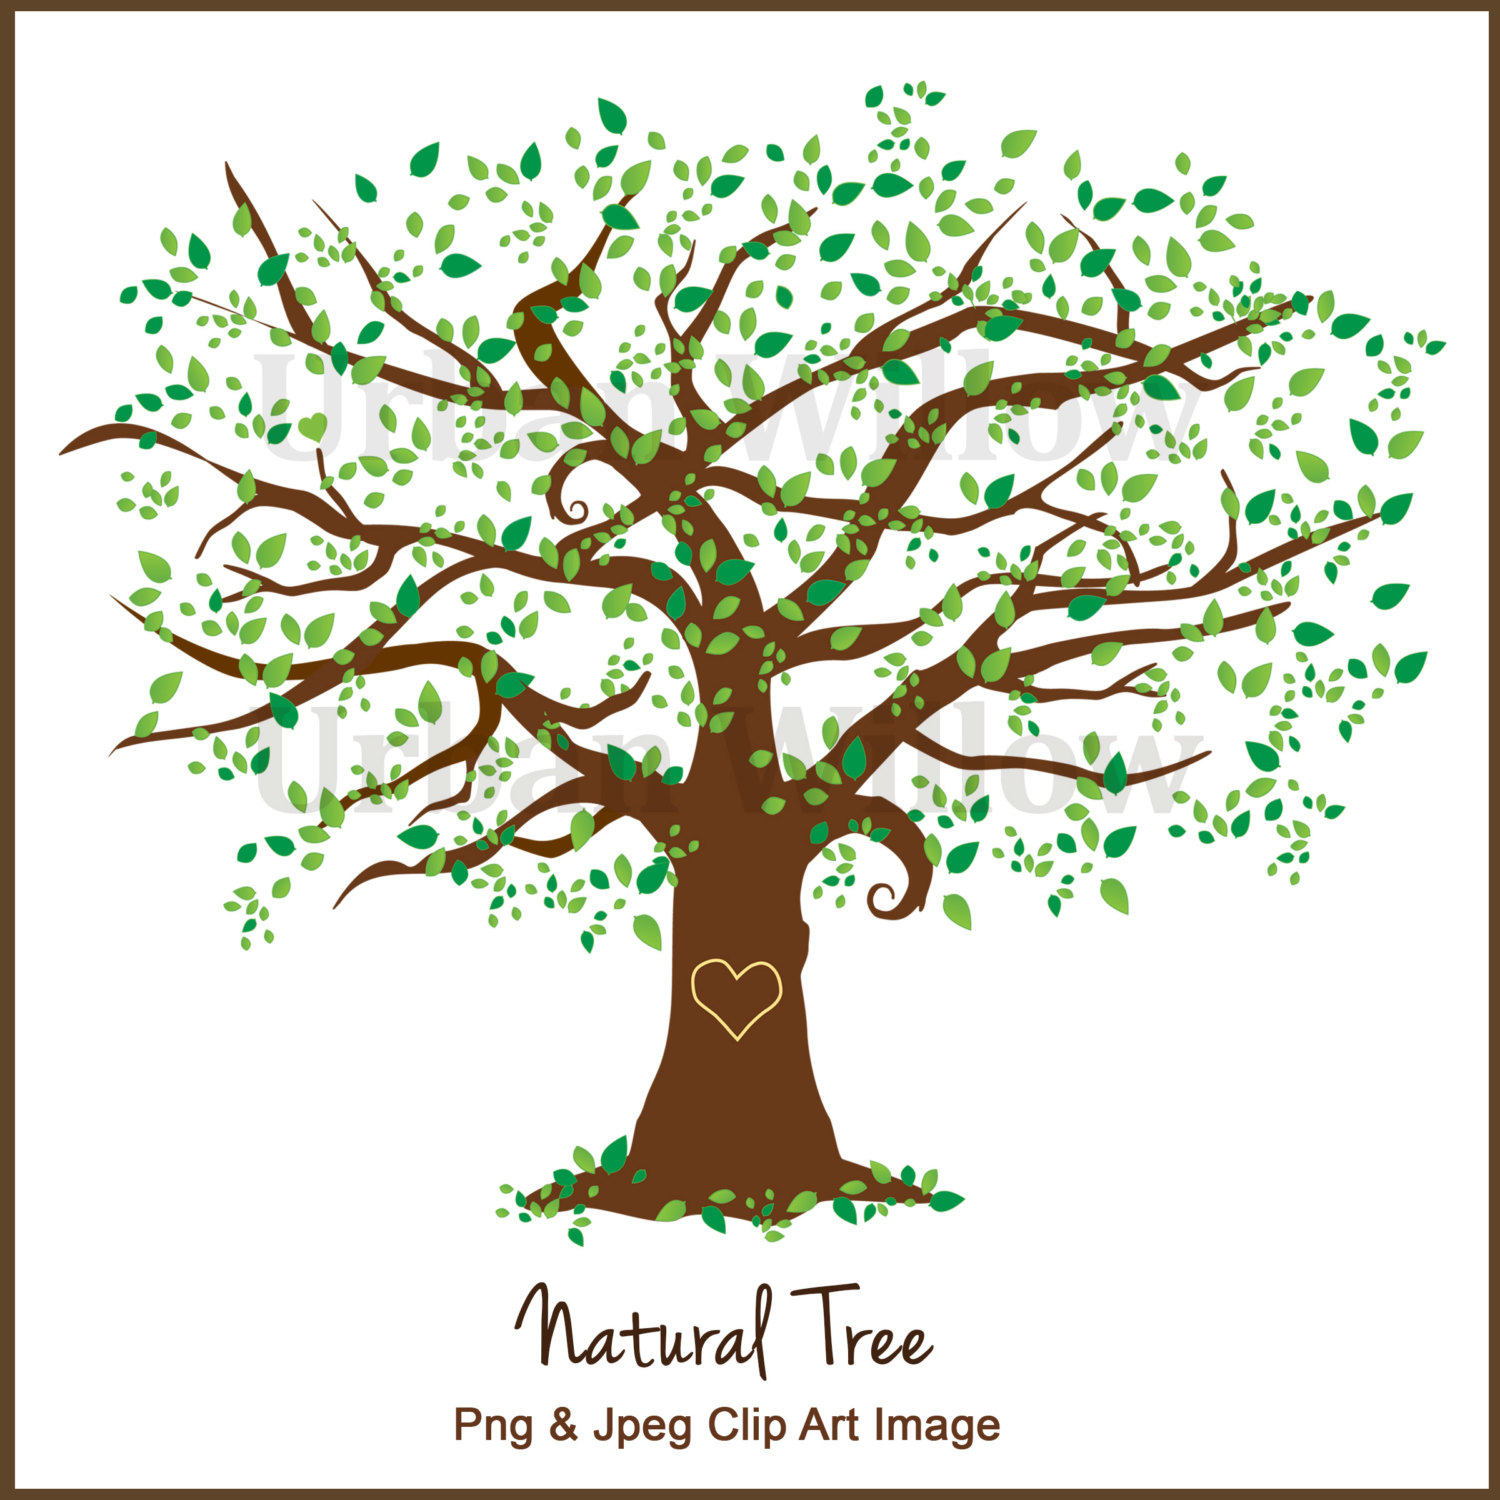 Elm Tree clipart #8, Download drawings